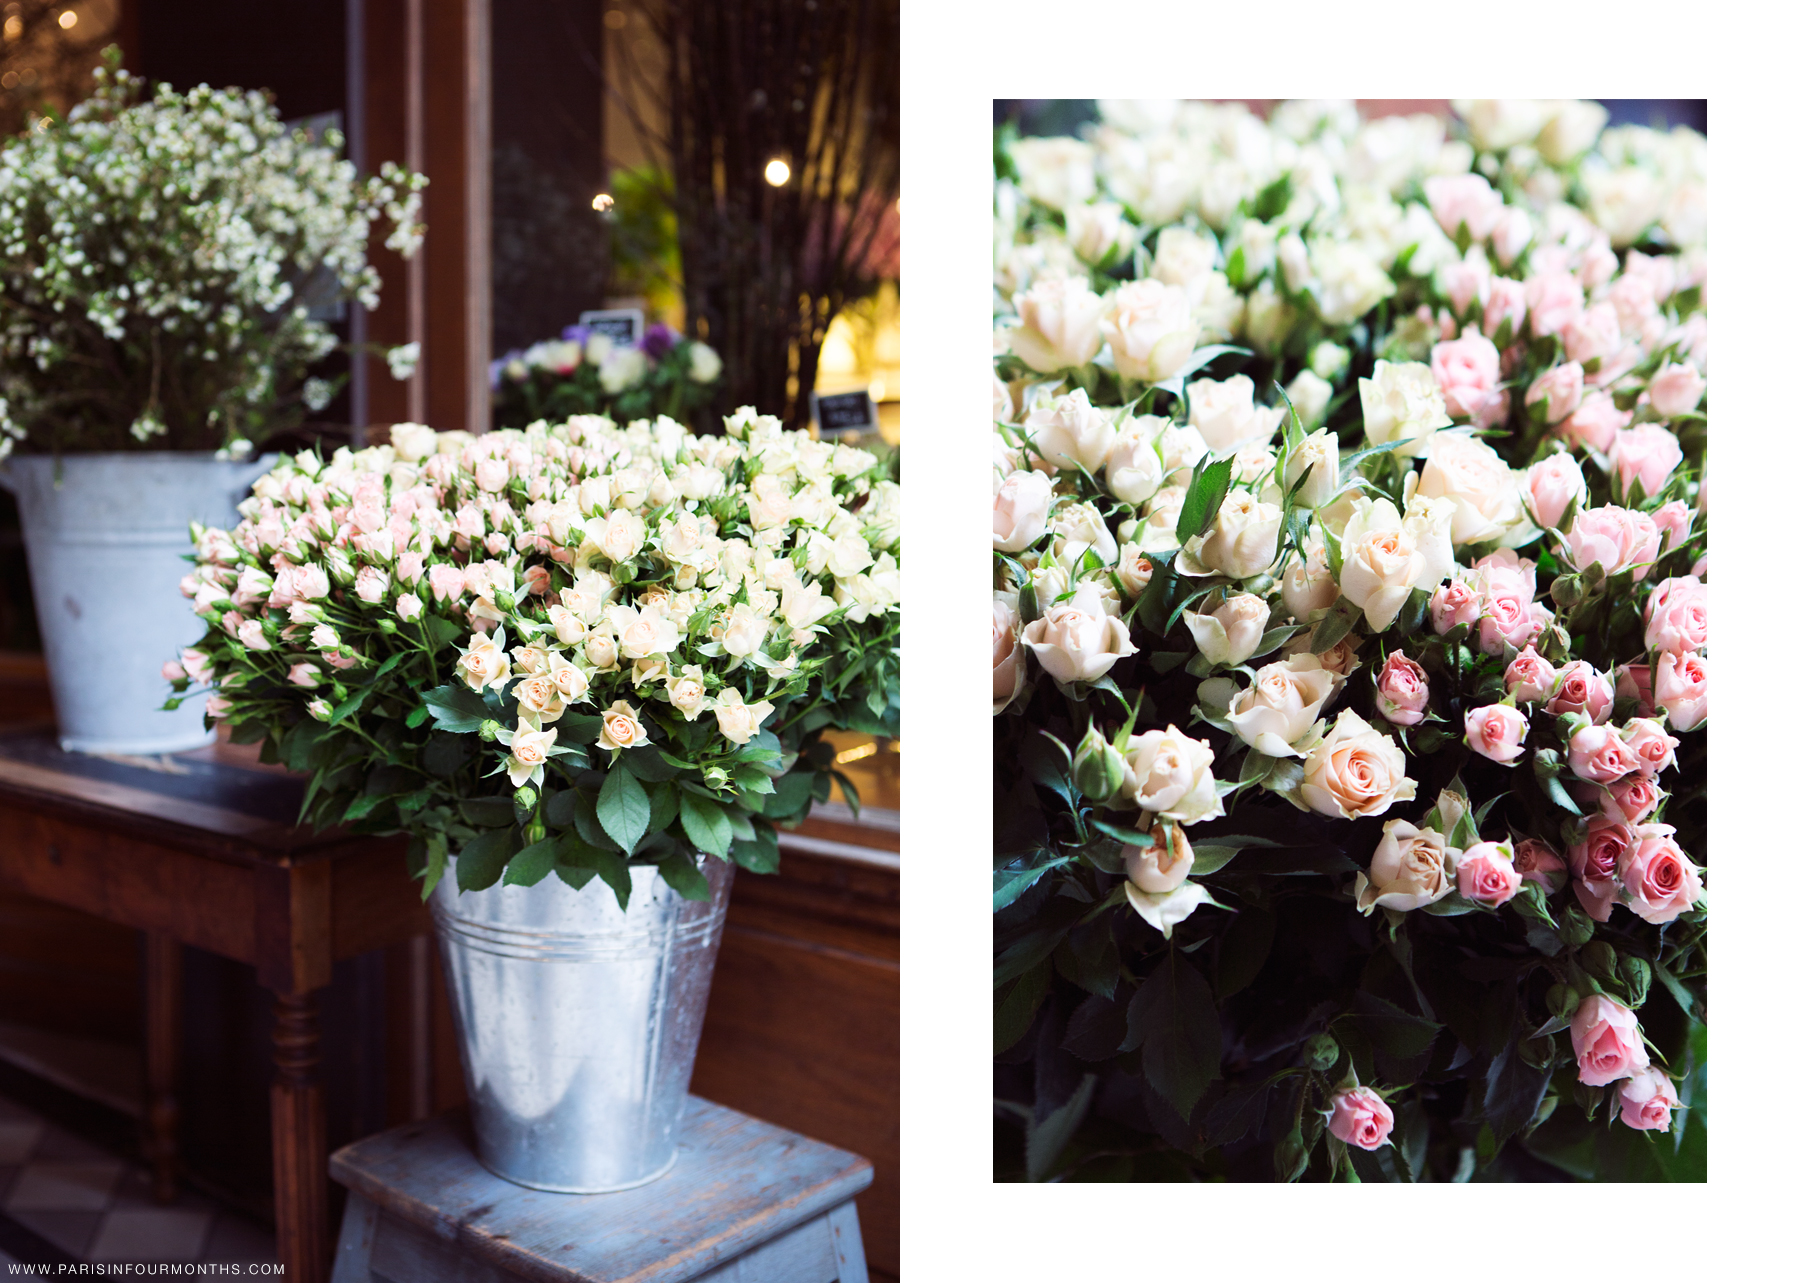 Parisian flower shop by Carin Olsson (Paris in Four Months)